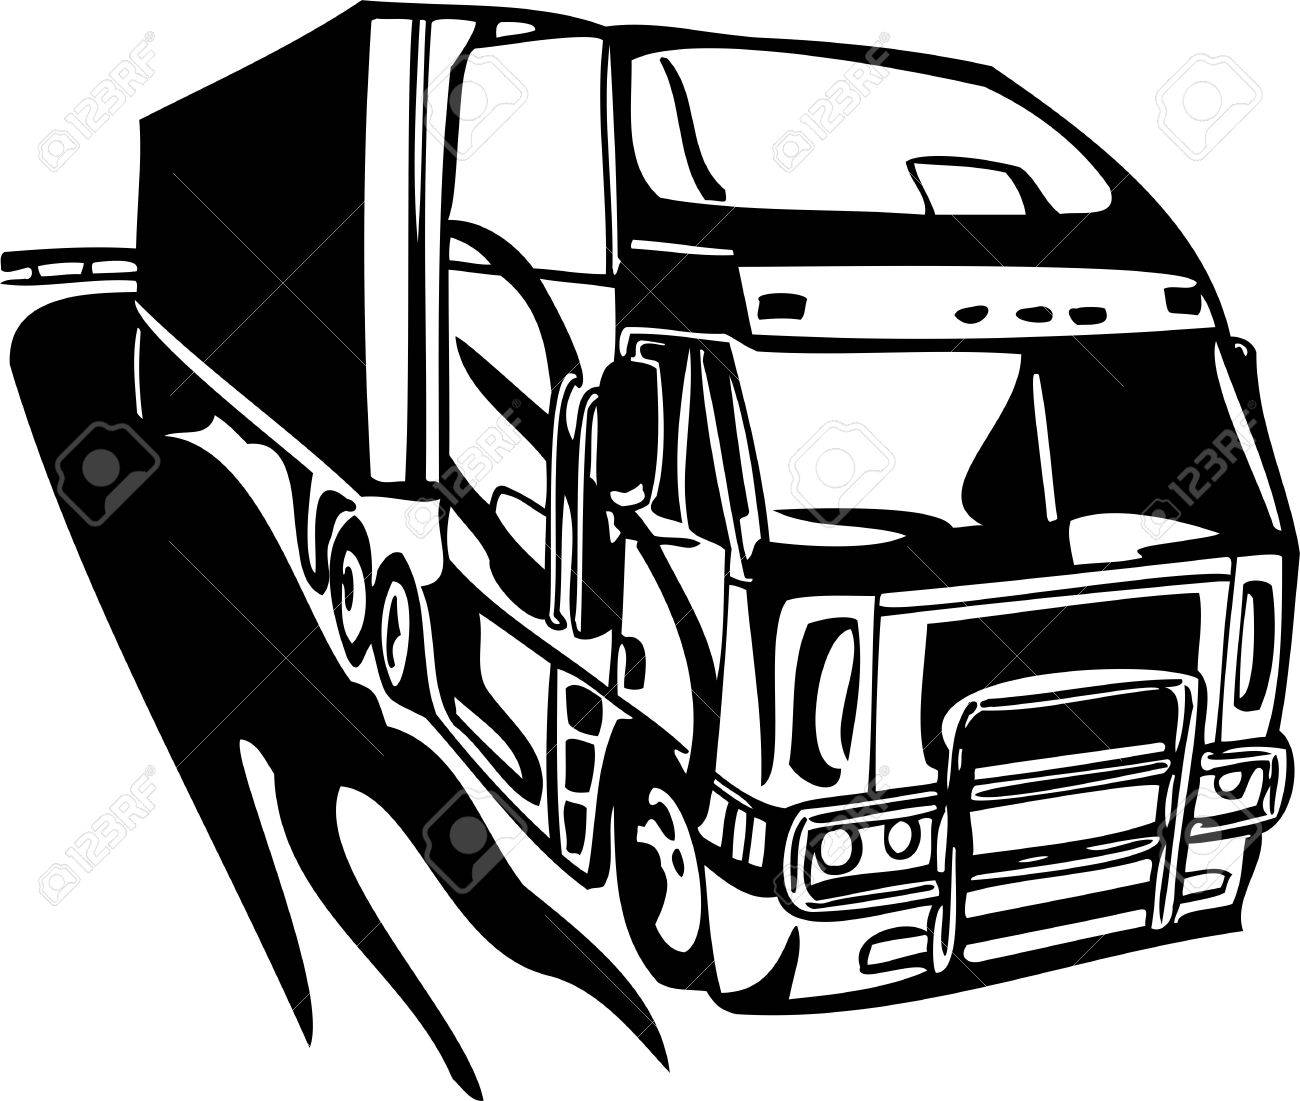 Racing Trucks with inclusion of a flames and tribal illustration ready for vinyl cutting. Stock Vector - 8651099